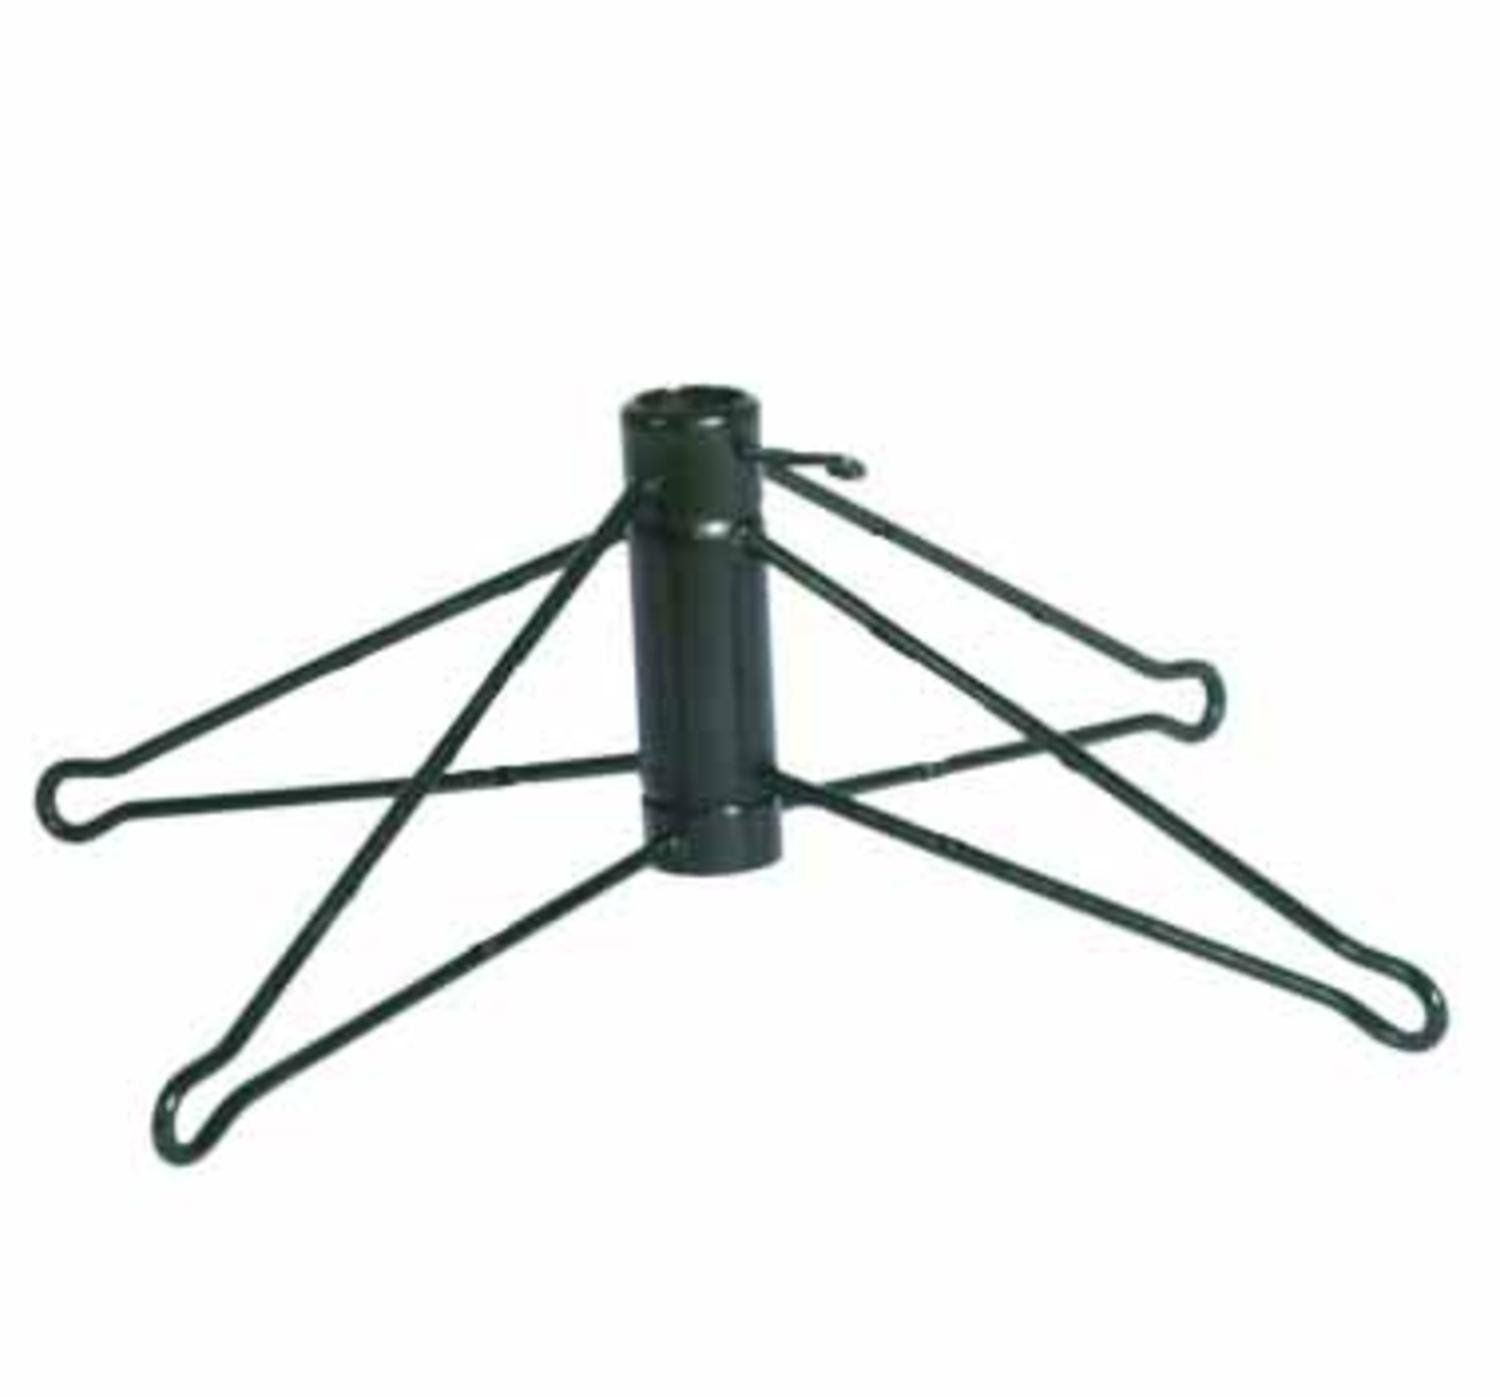 Vickerman Green Metal Christmas Tree Stand For 4' - 4.5' Artificial Trees